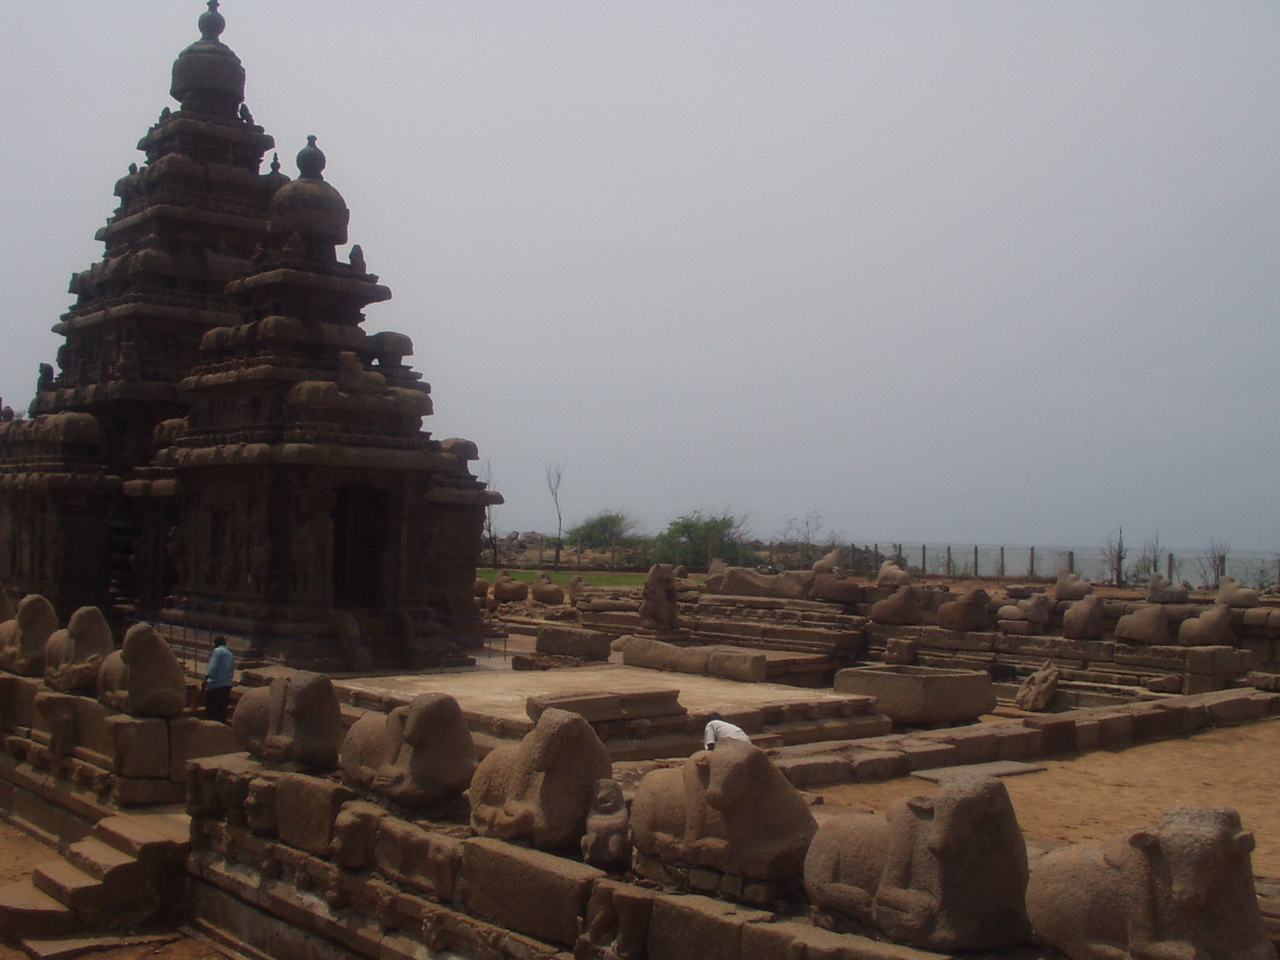 10 April: Shore Temple